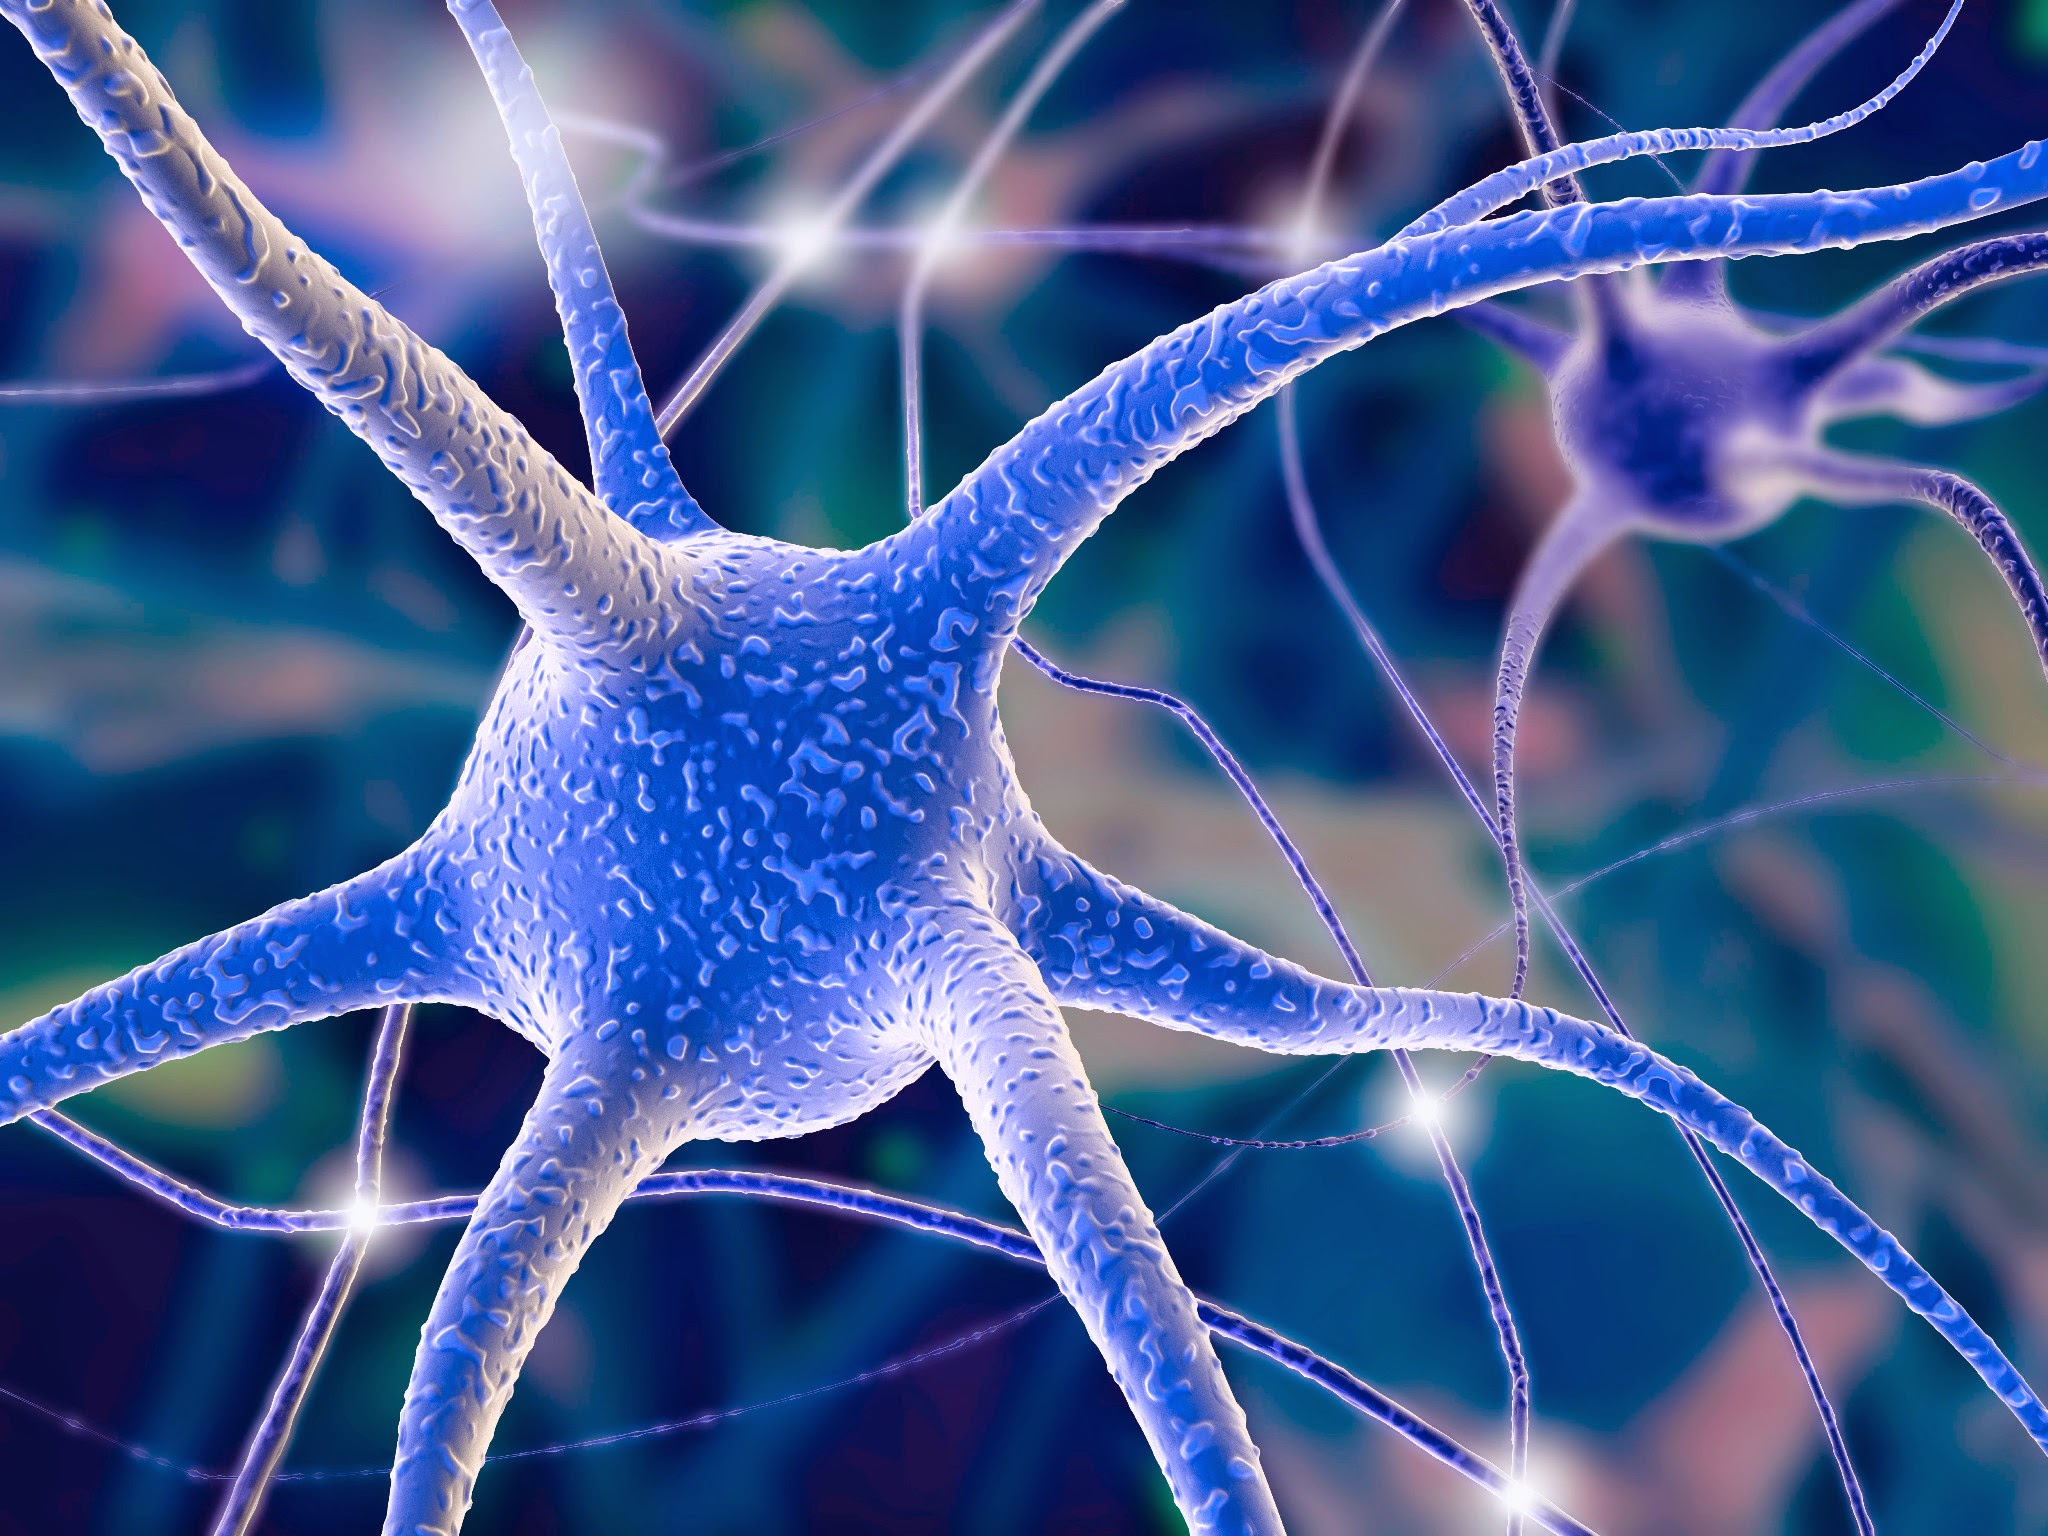 Neuron Wallpaper The national institutes of